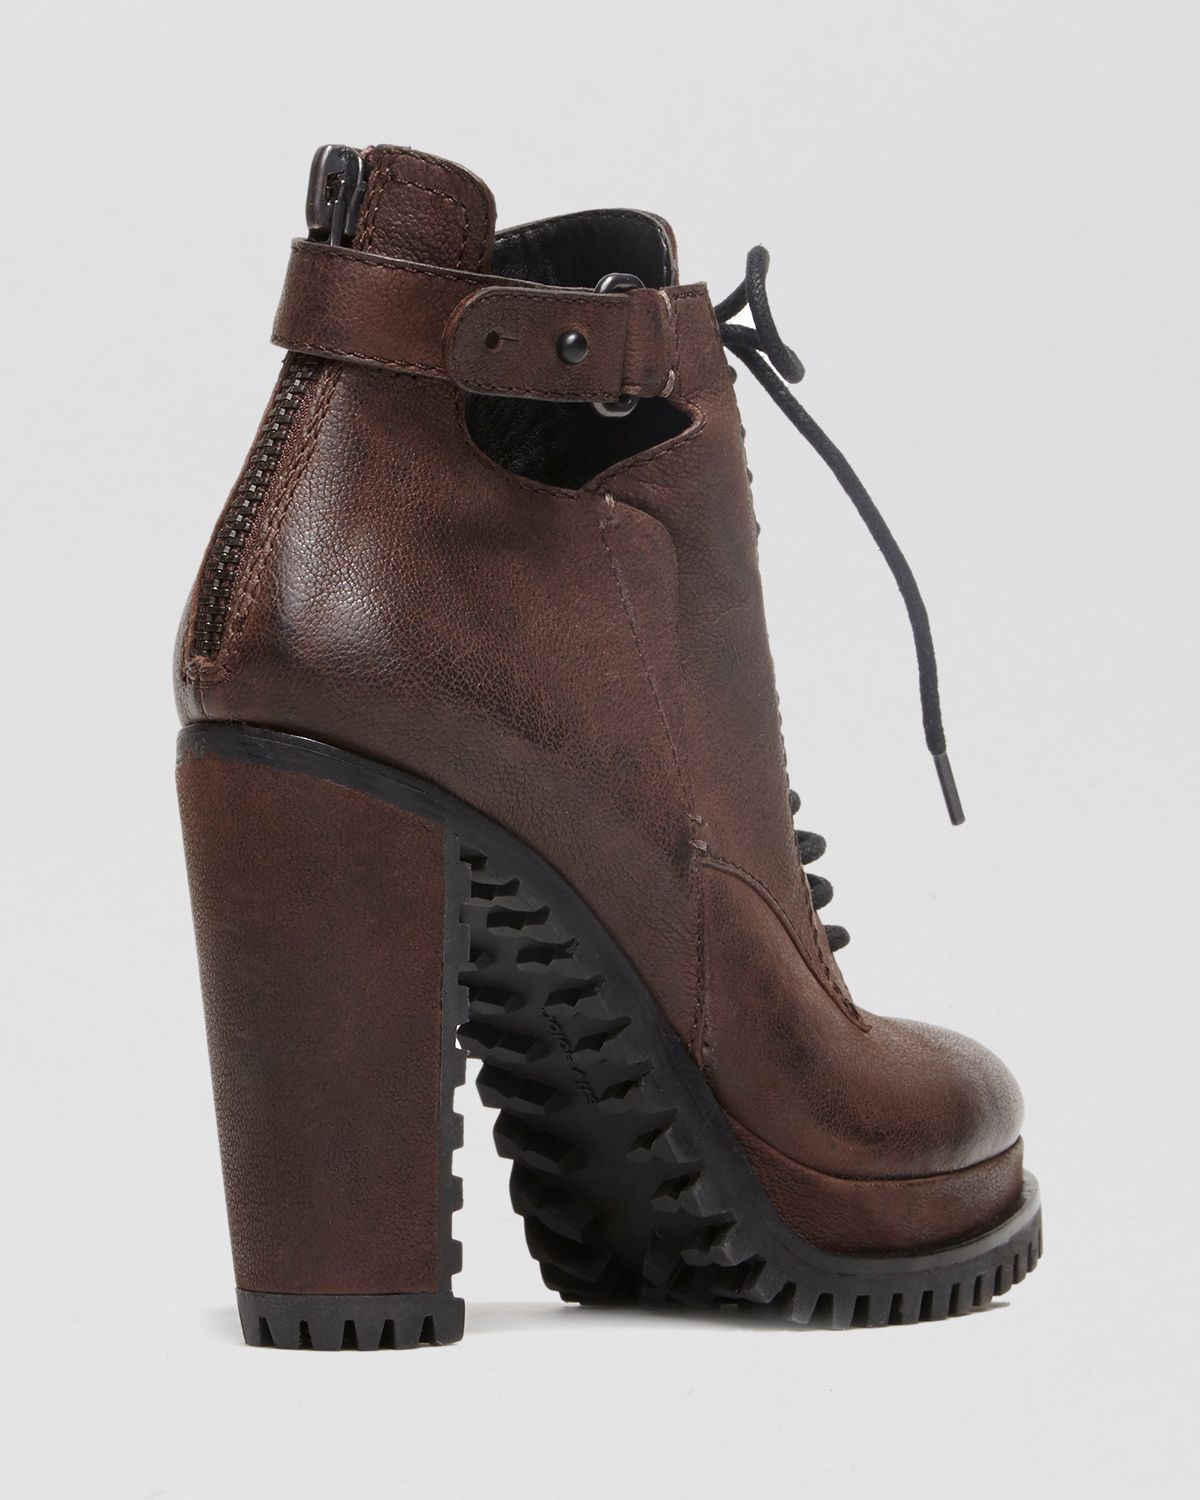 Dolce Vita Lace Up Lug Sole Platform Booties Daytona